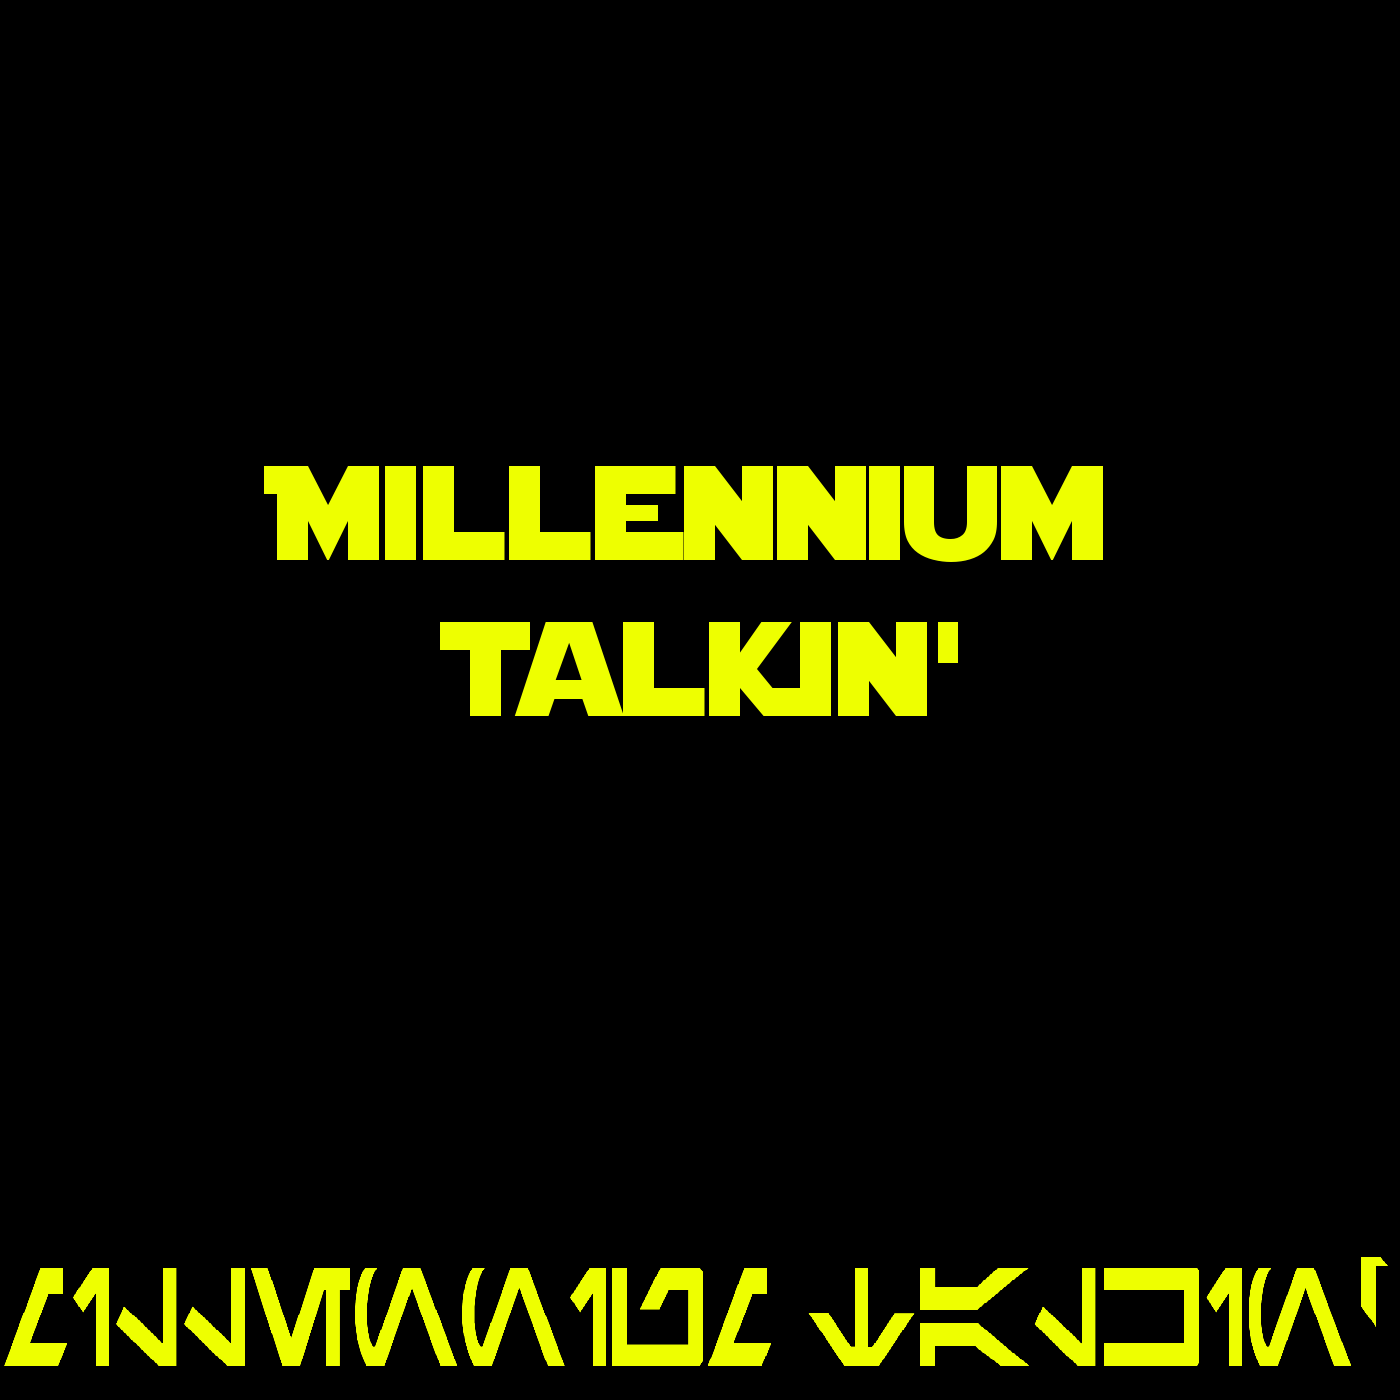 Star Wars Millennium Talkin